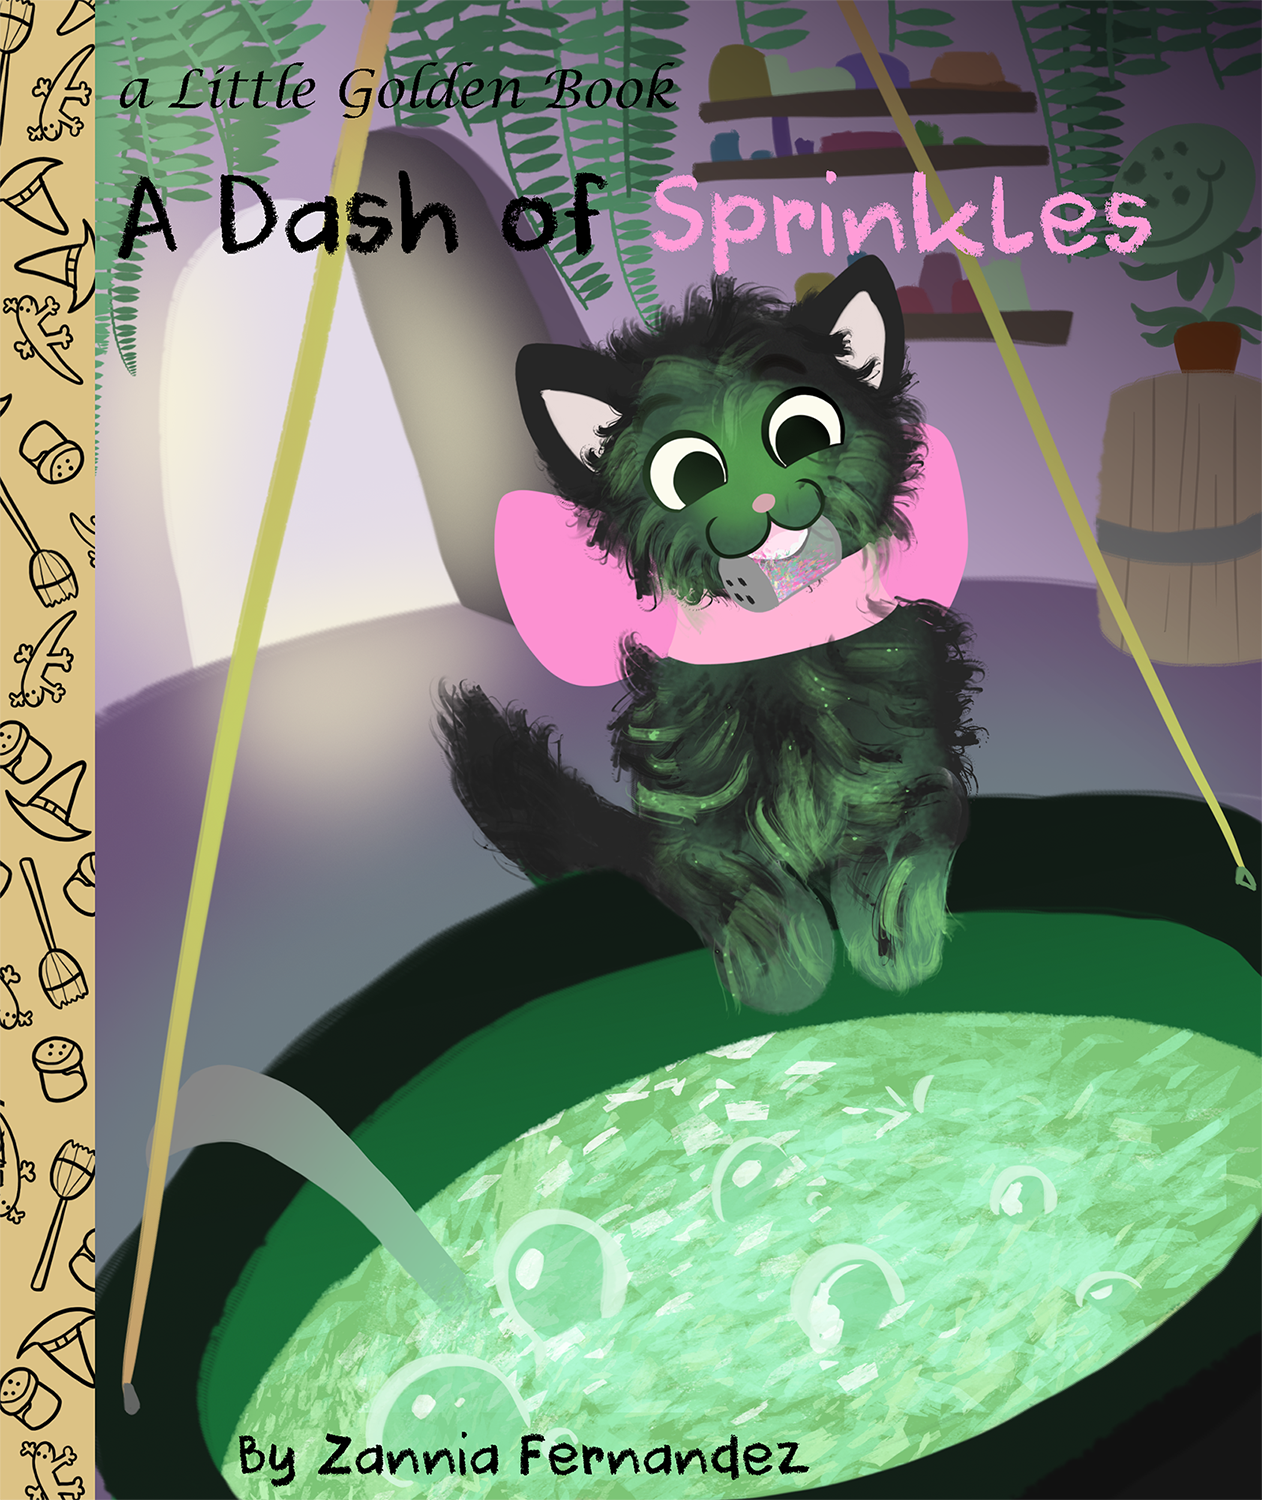 A black kitten standing over a bubbling cauldron putting sprinkles in the brew while her witch owner is away.